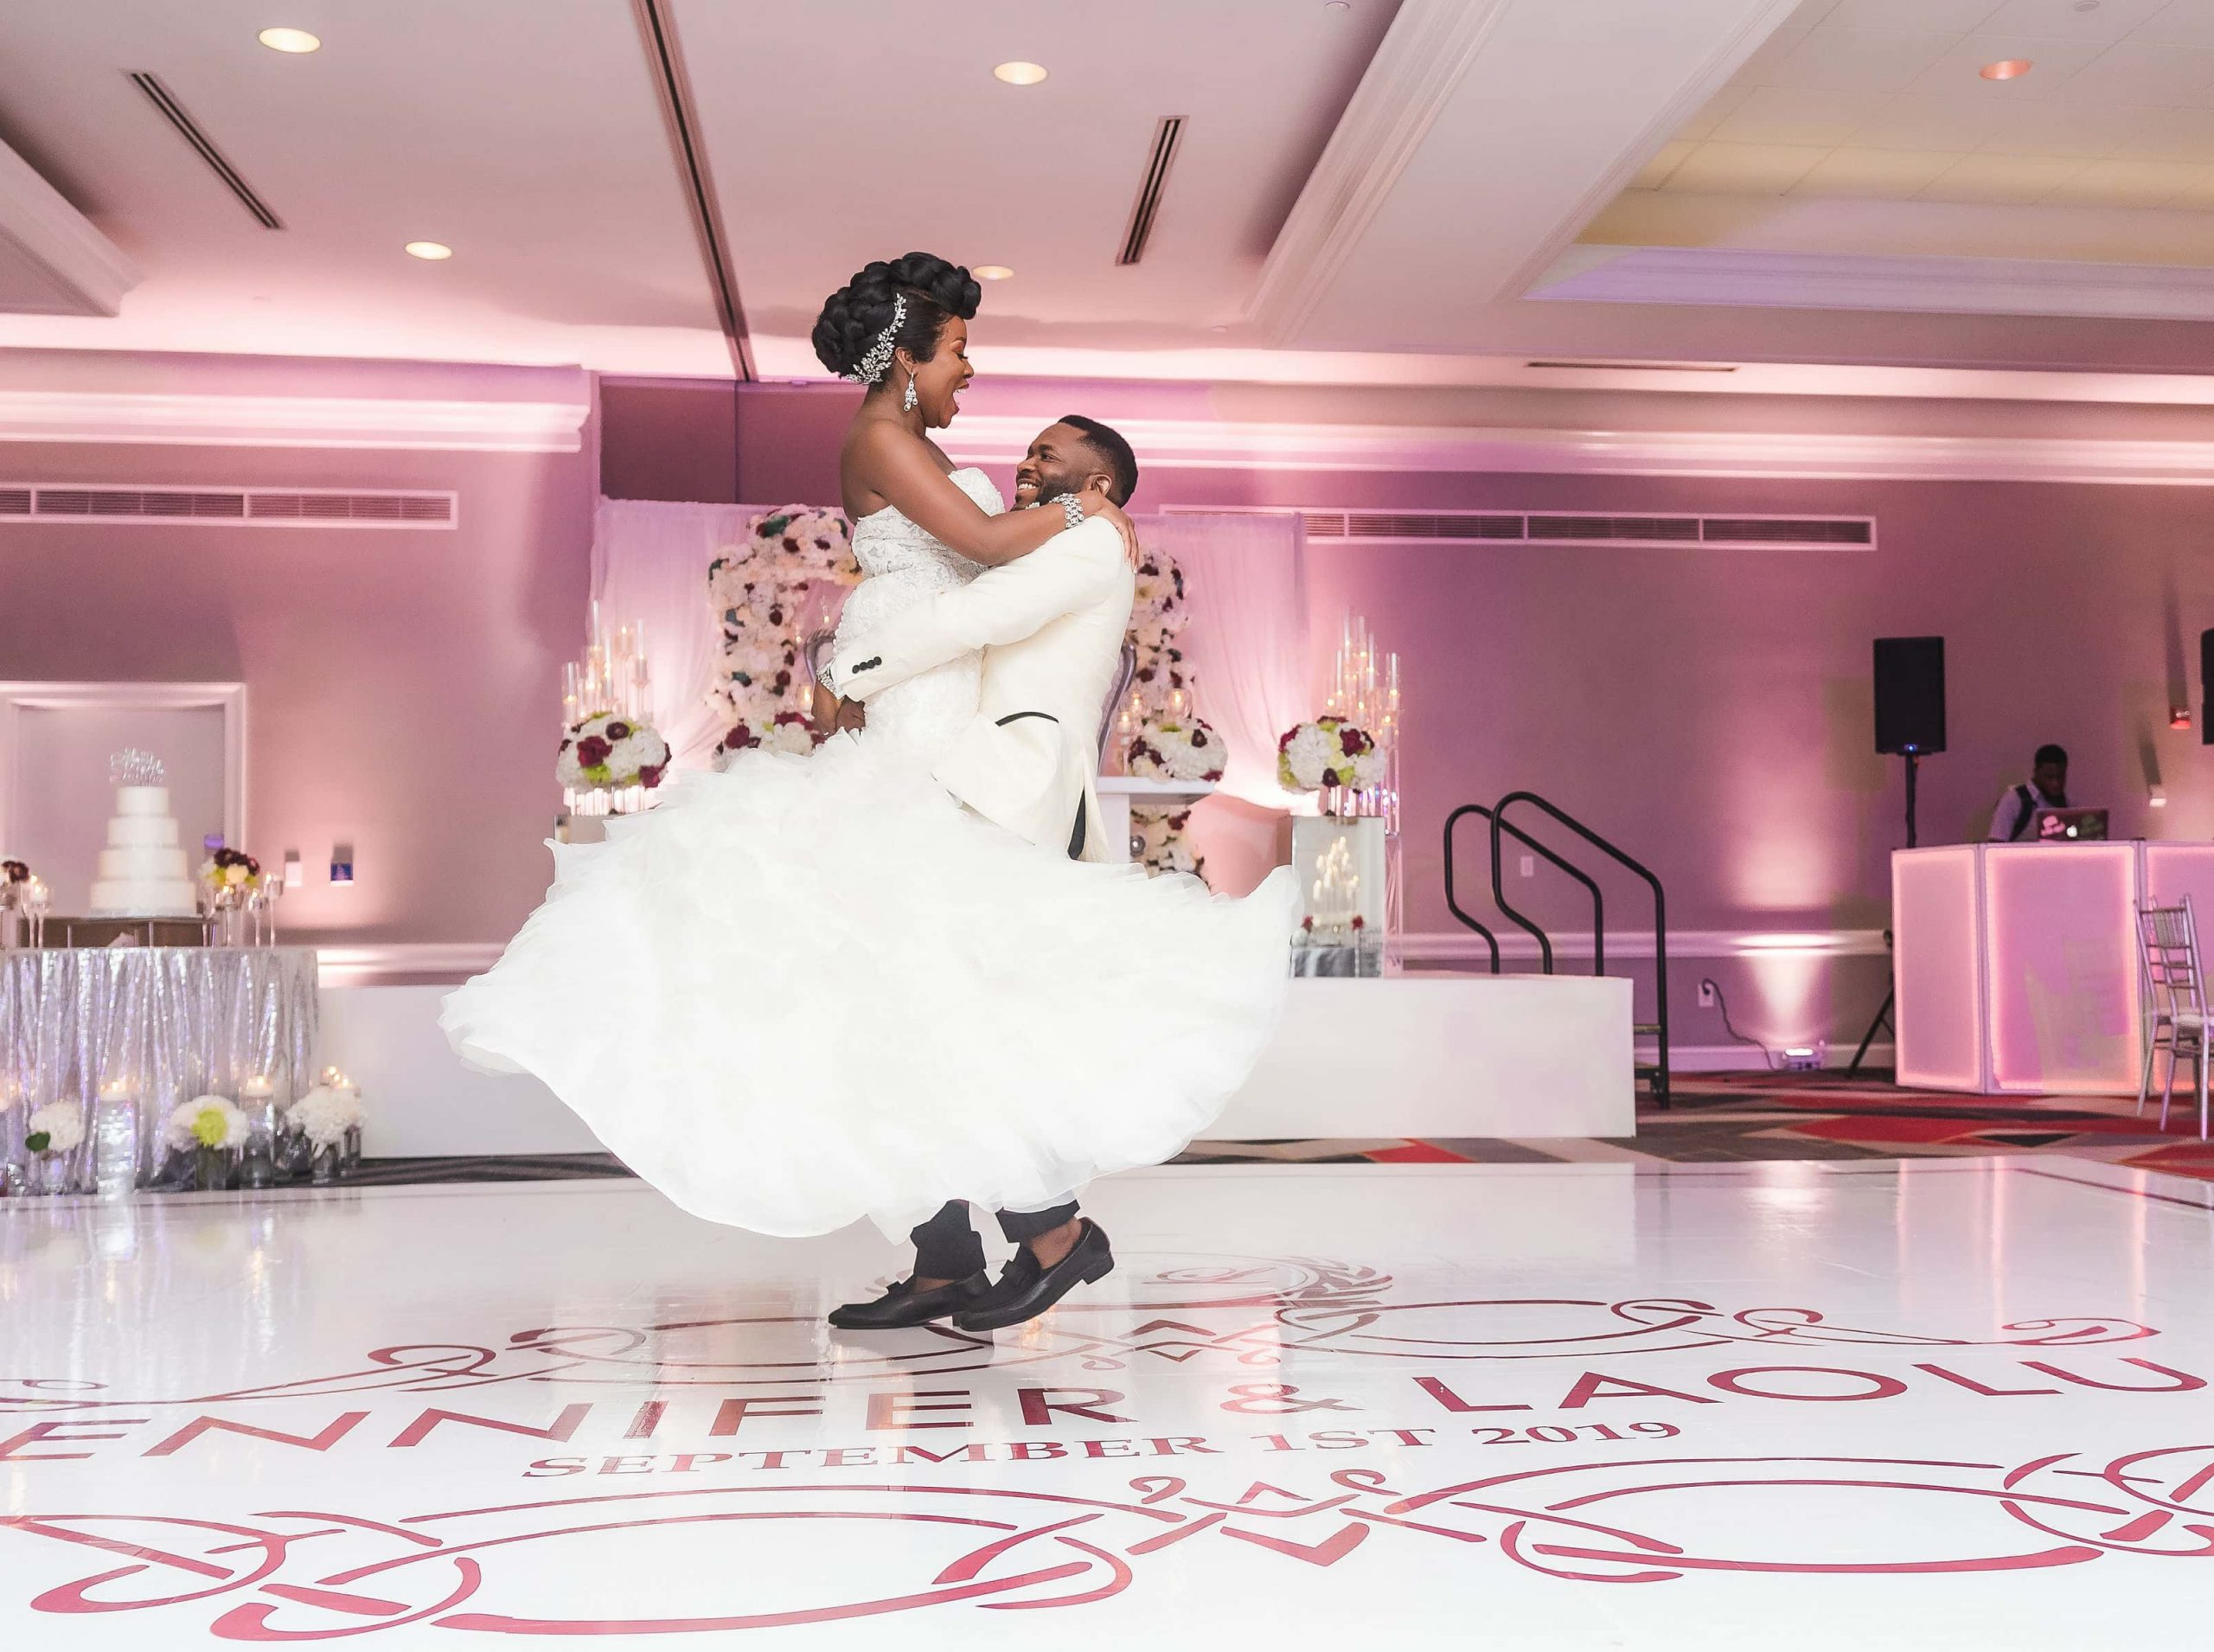 Dance-Floor-Decal-Wrap-Custom-Wedding-White-Stage-Cover-Design-Portable-Dance-Floor-Rental-Portable-Stage-Rental-Event-Stage-Lighting-Selfie-Mirror-Photo-Booth